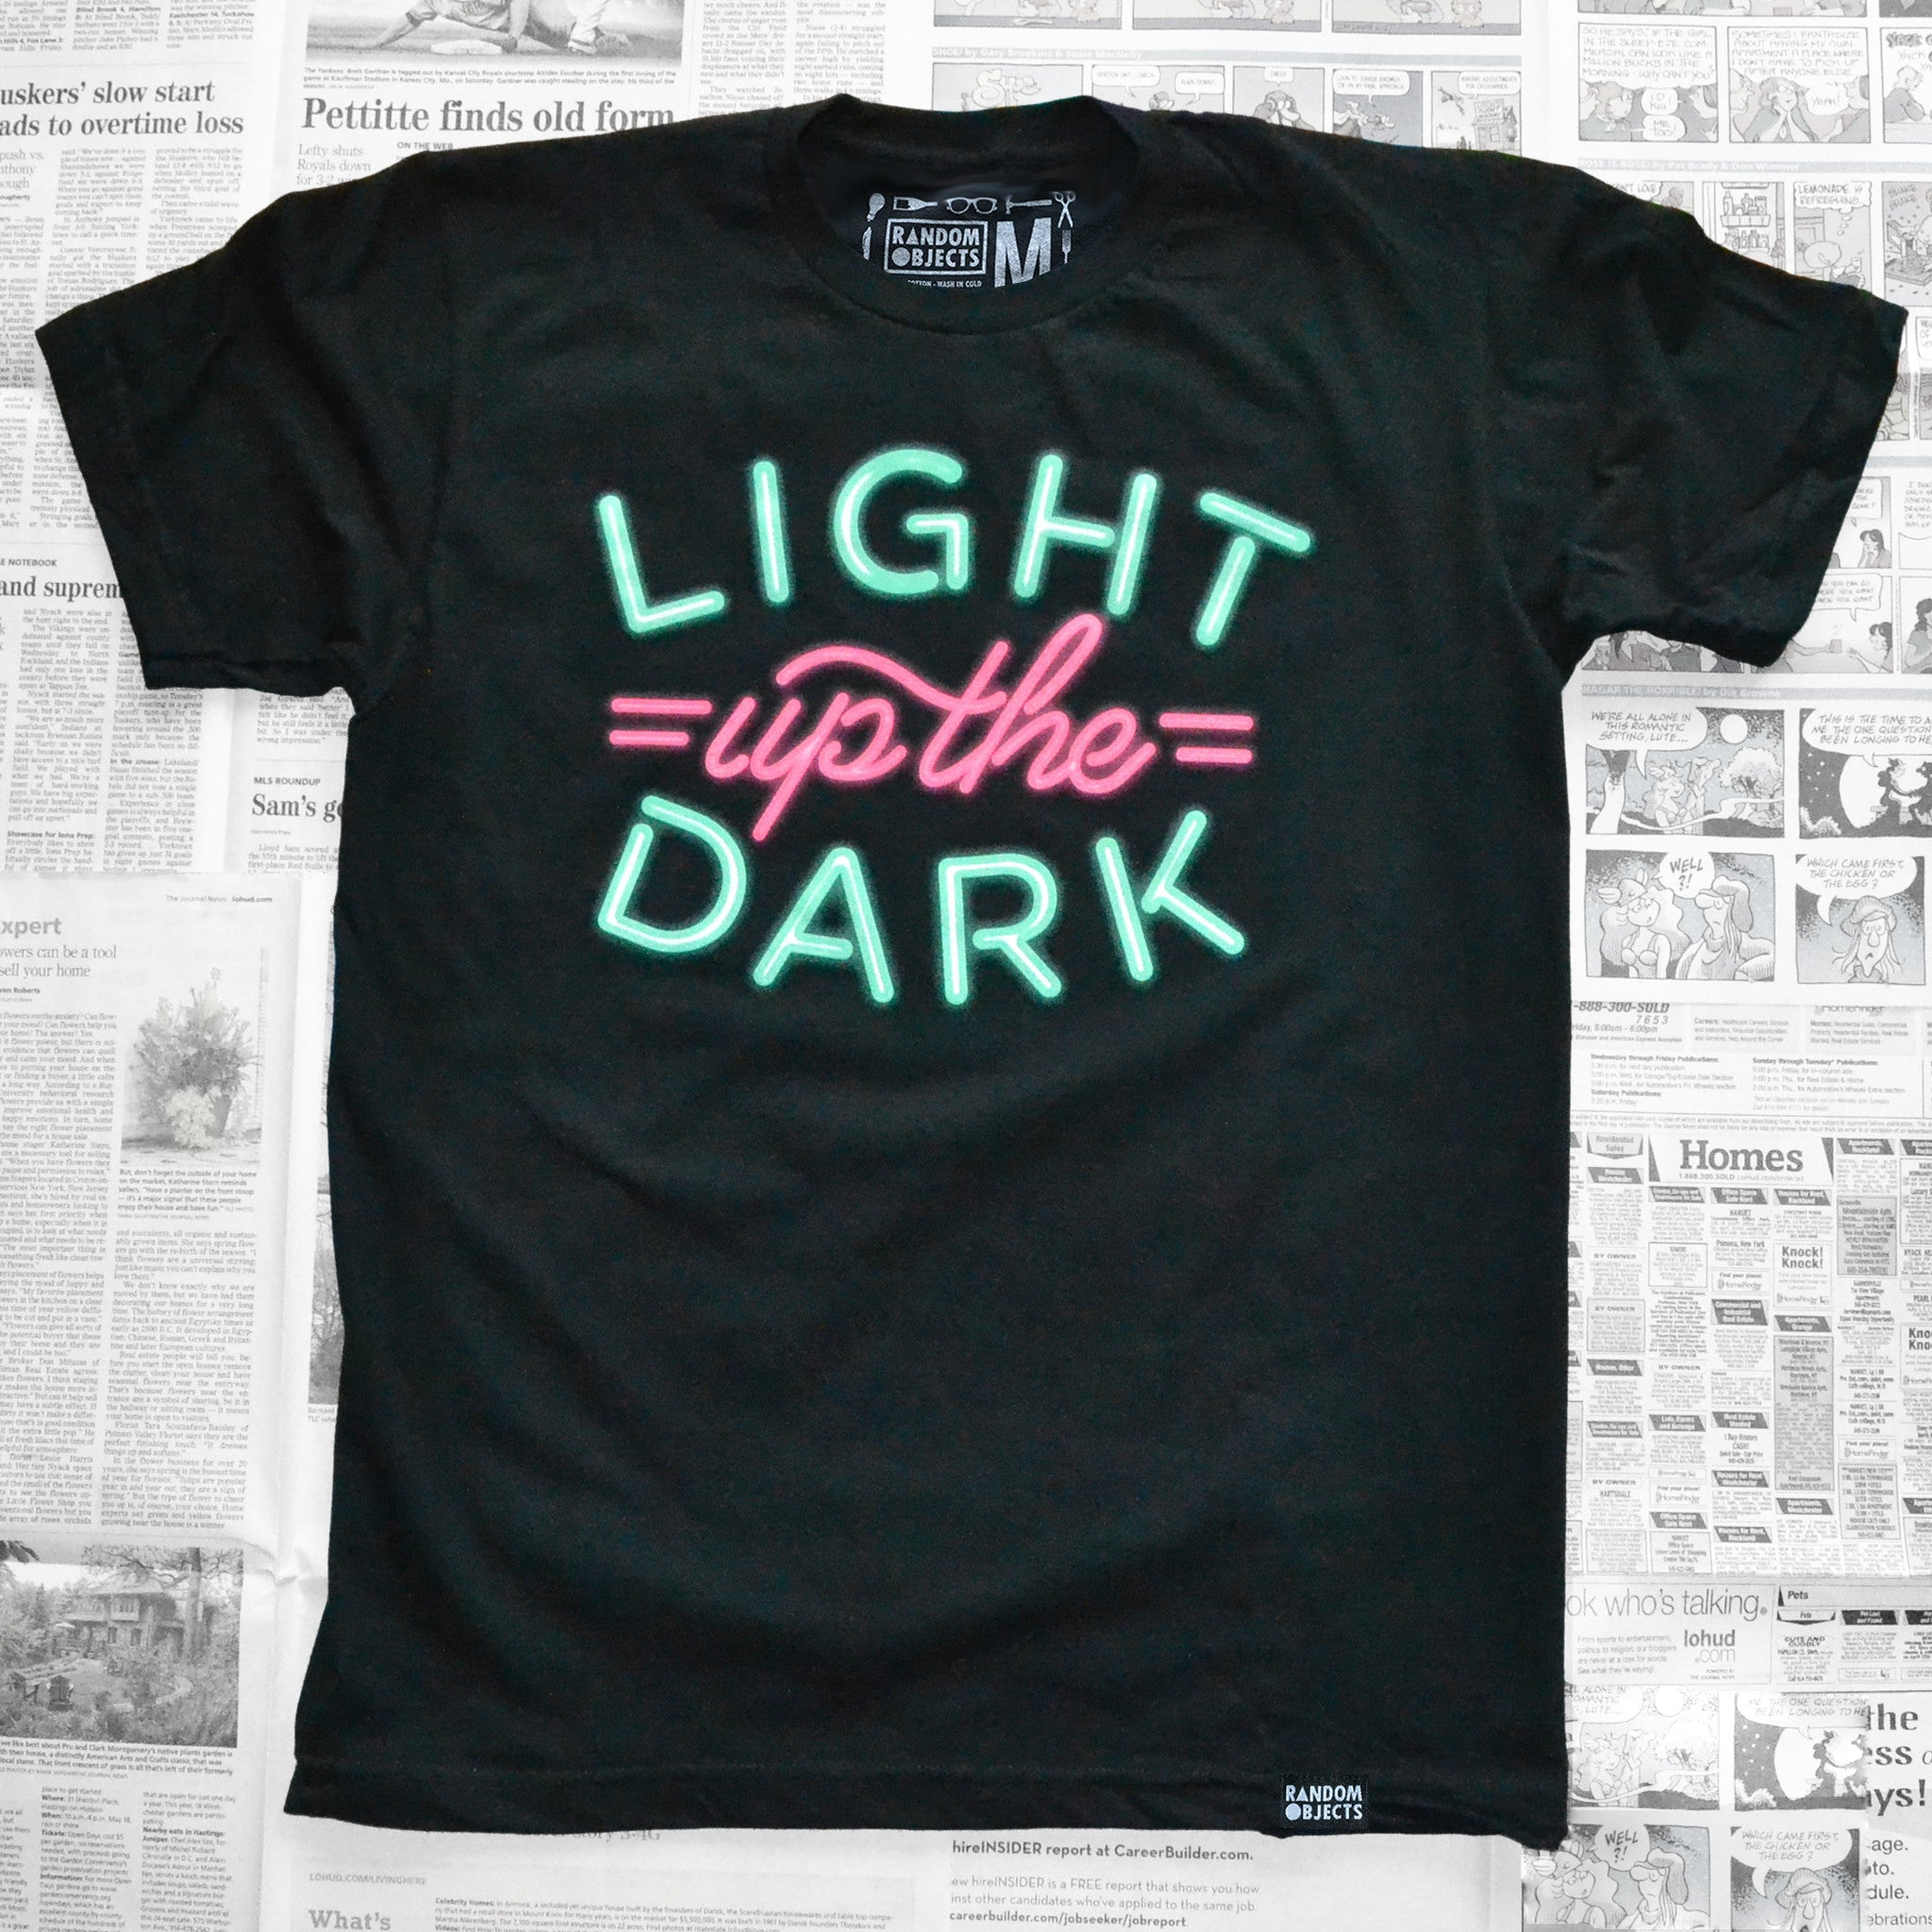 LIGHT UP THE DARK